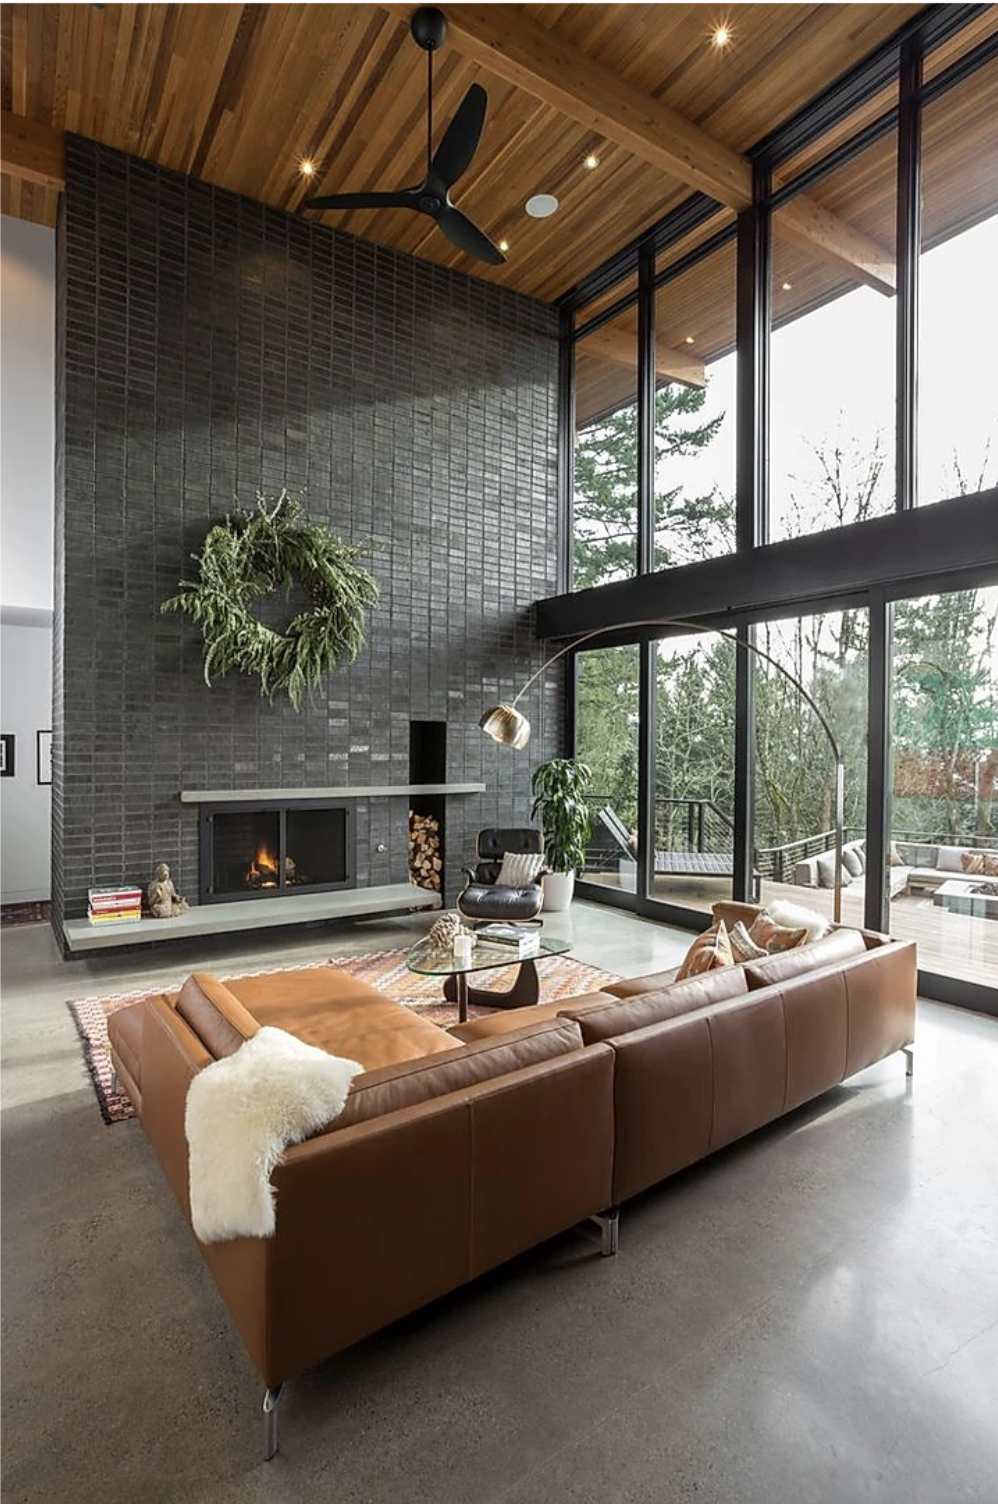 Modern doesn't mean lifeless: How to add warmth to a modern aesthetic